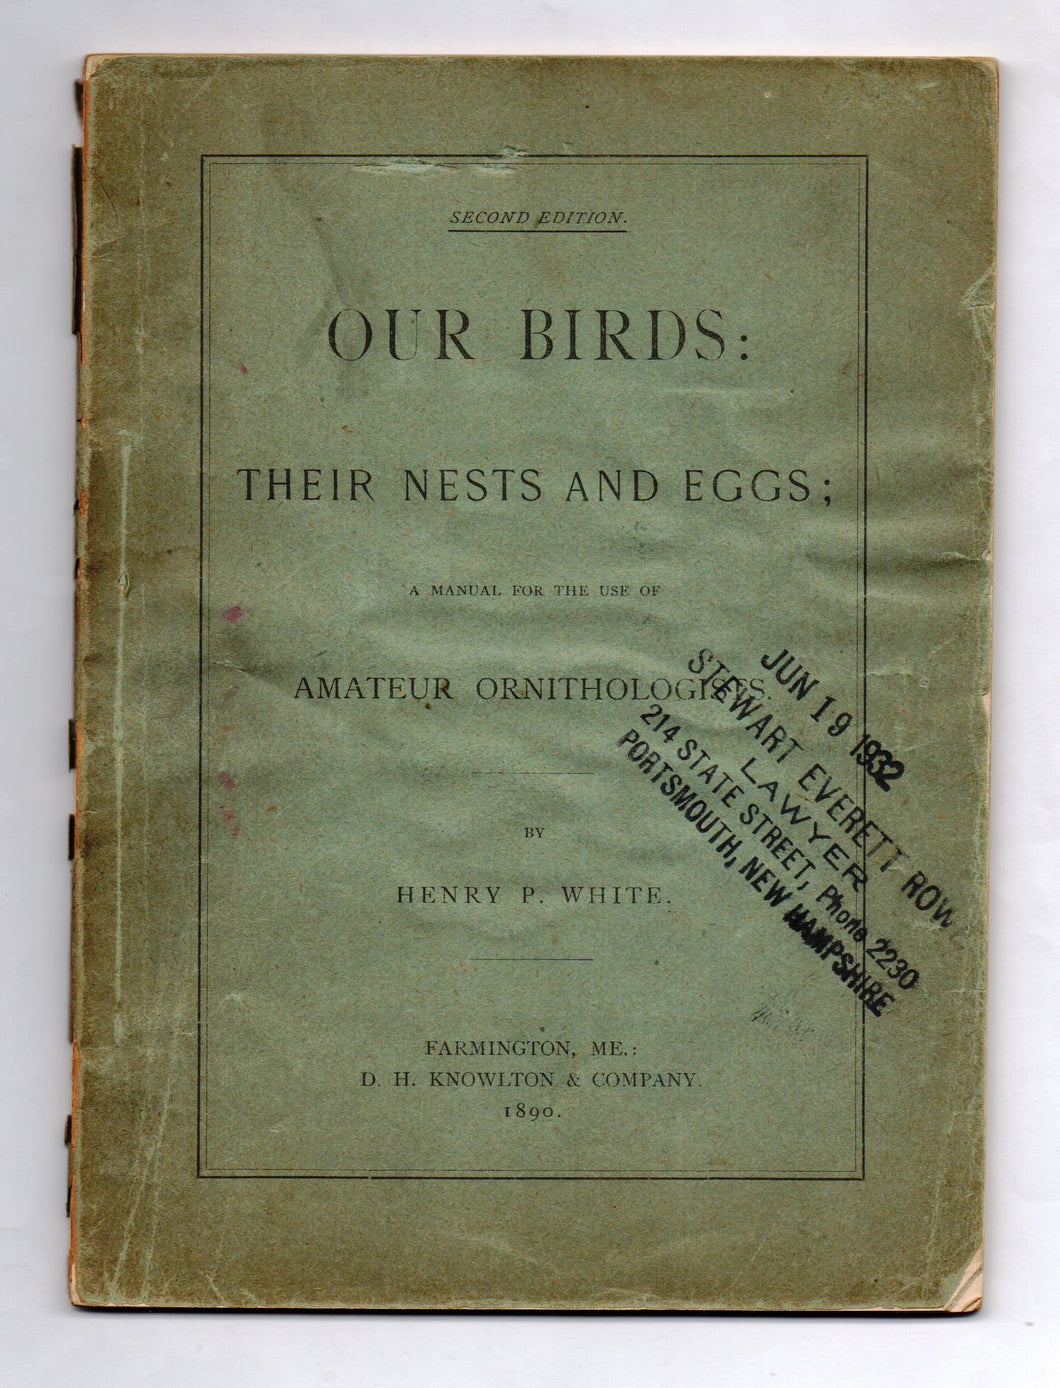 Our Birds: Their Nests and Eggs; A Manual for the use of Amateur Ornithologists